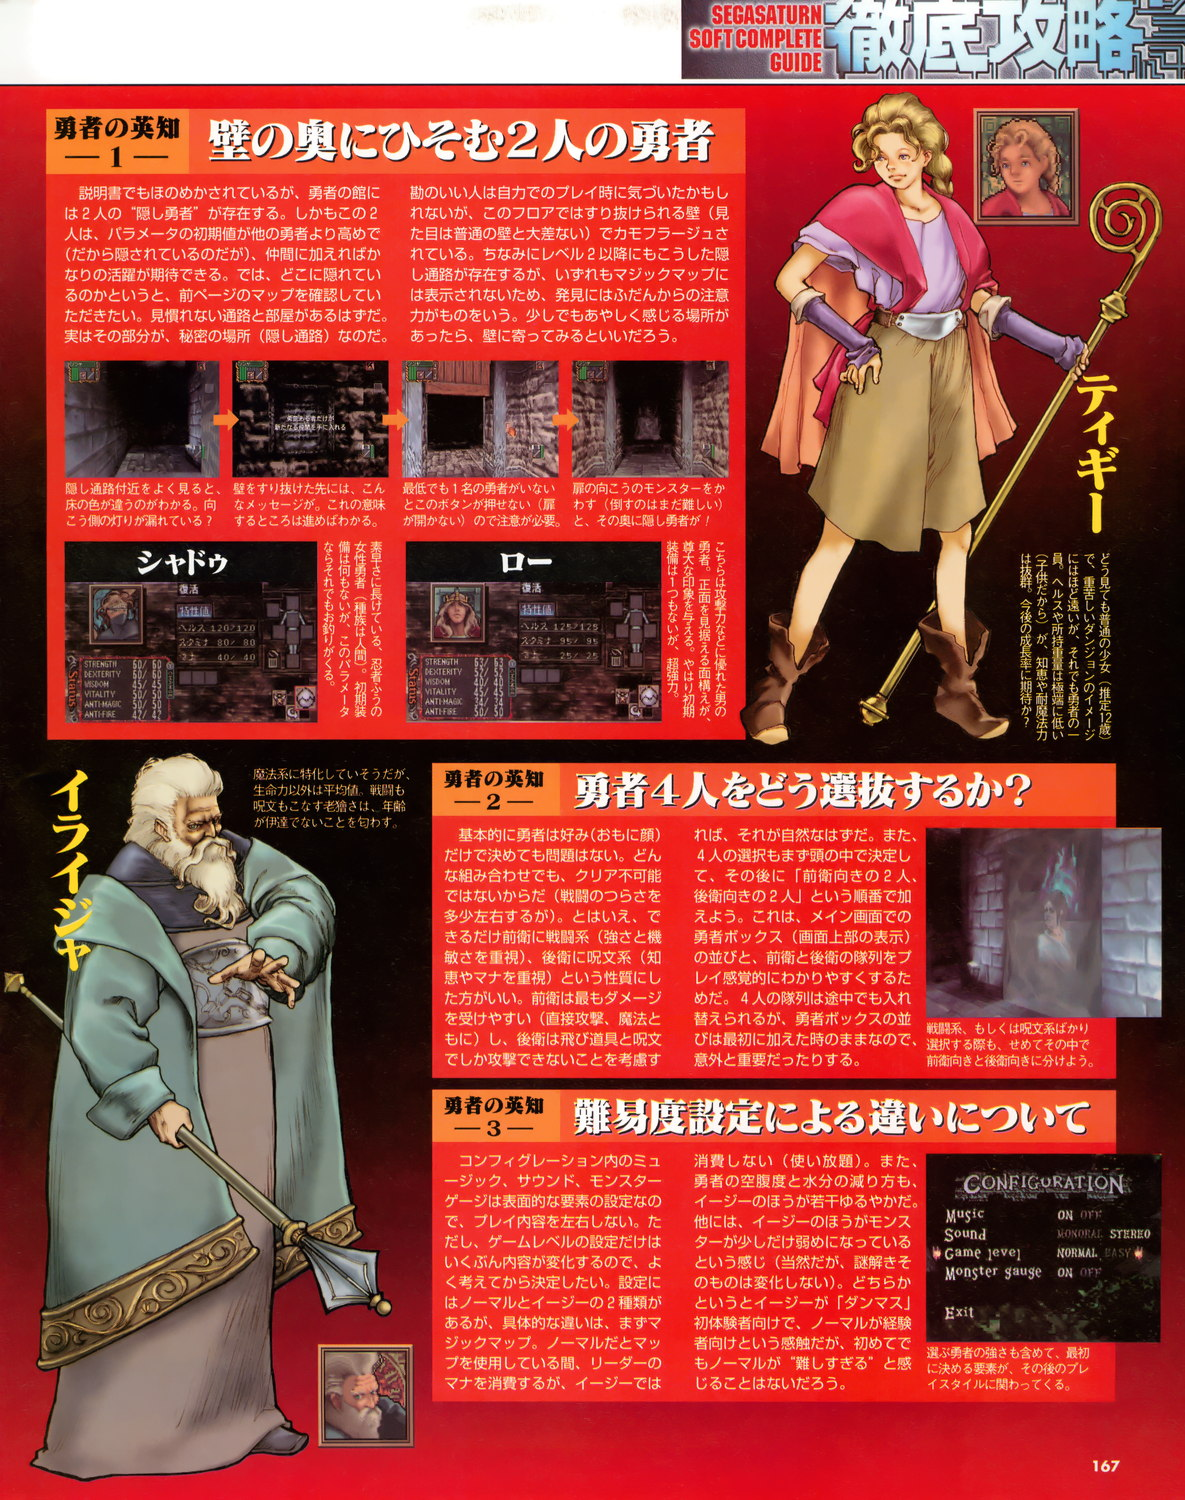 Dungeon Master Nexus Guide published in Japanese magazine 'Sega Saturn Magazine', Vol 11 10 April 1998, Page 167